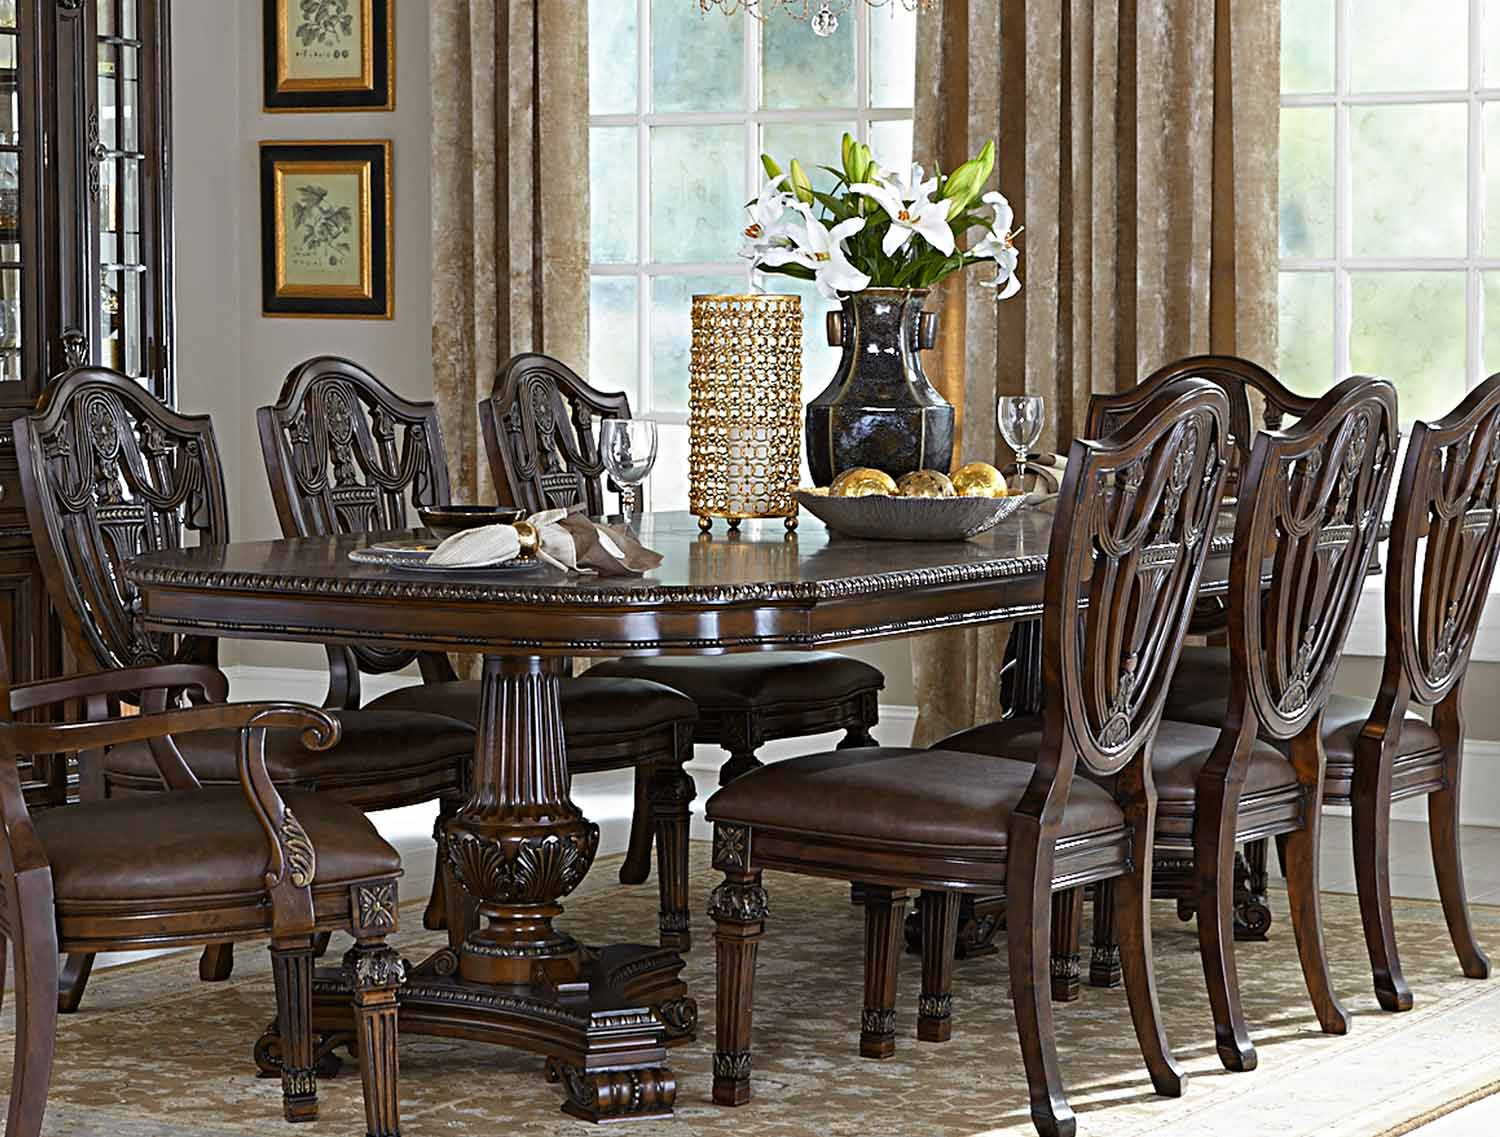 Homelegance Chilton Double Pedestal Dining Table with Leaf - Cherry